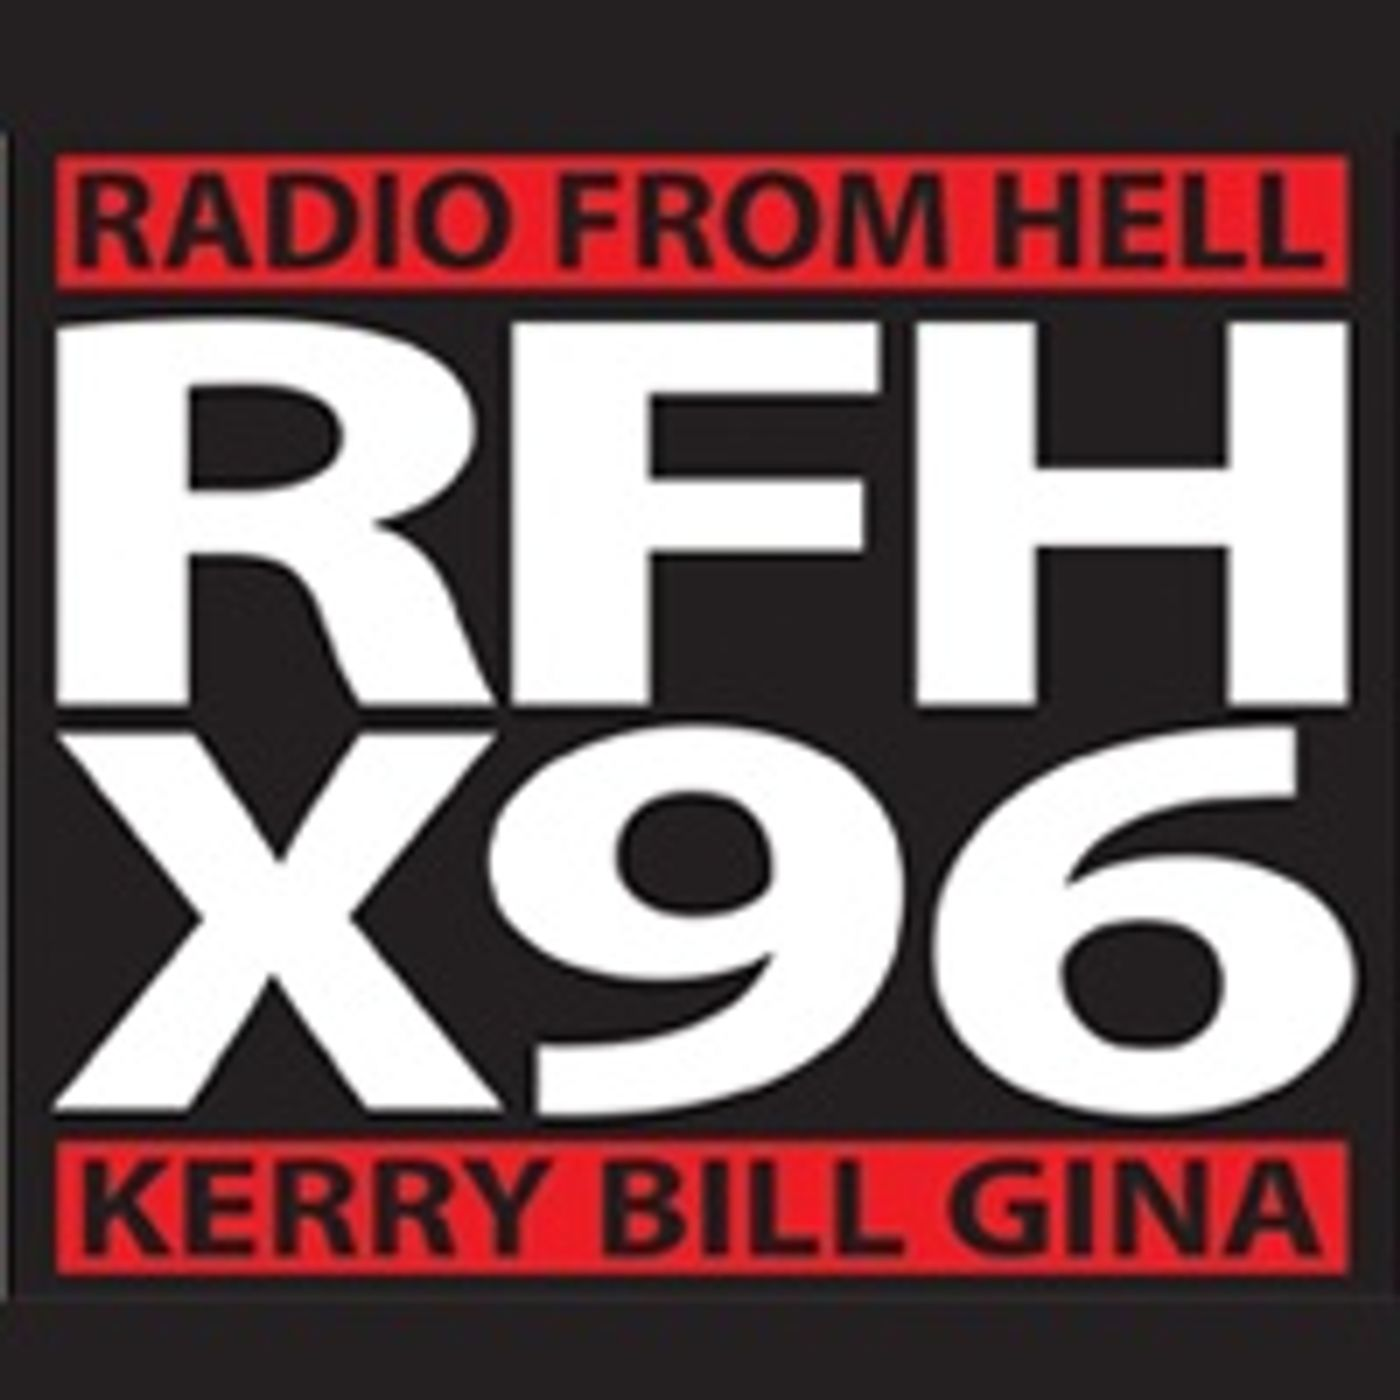 The Radio from Hell Show